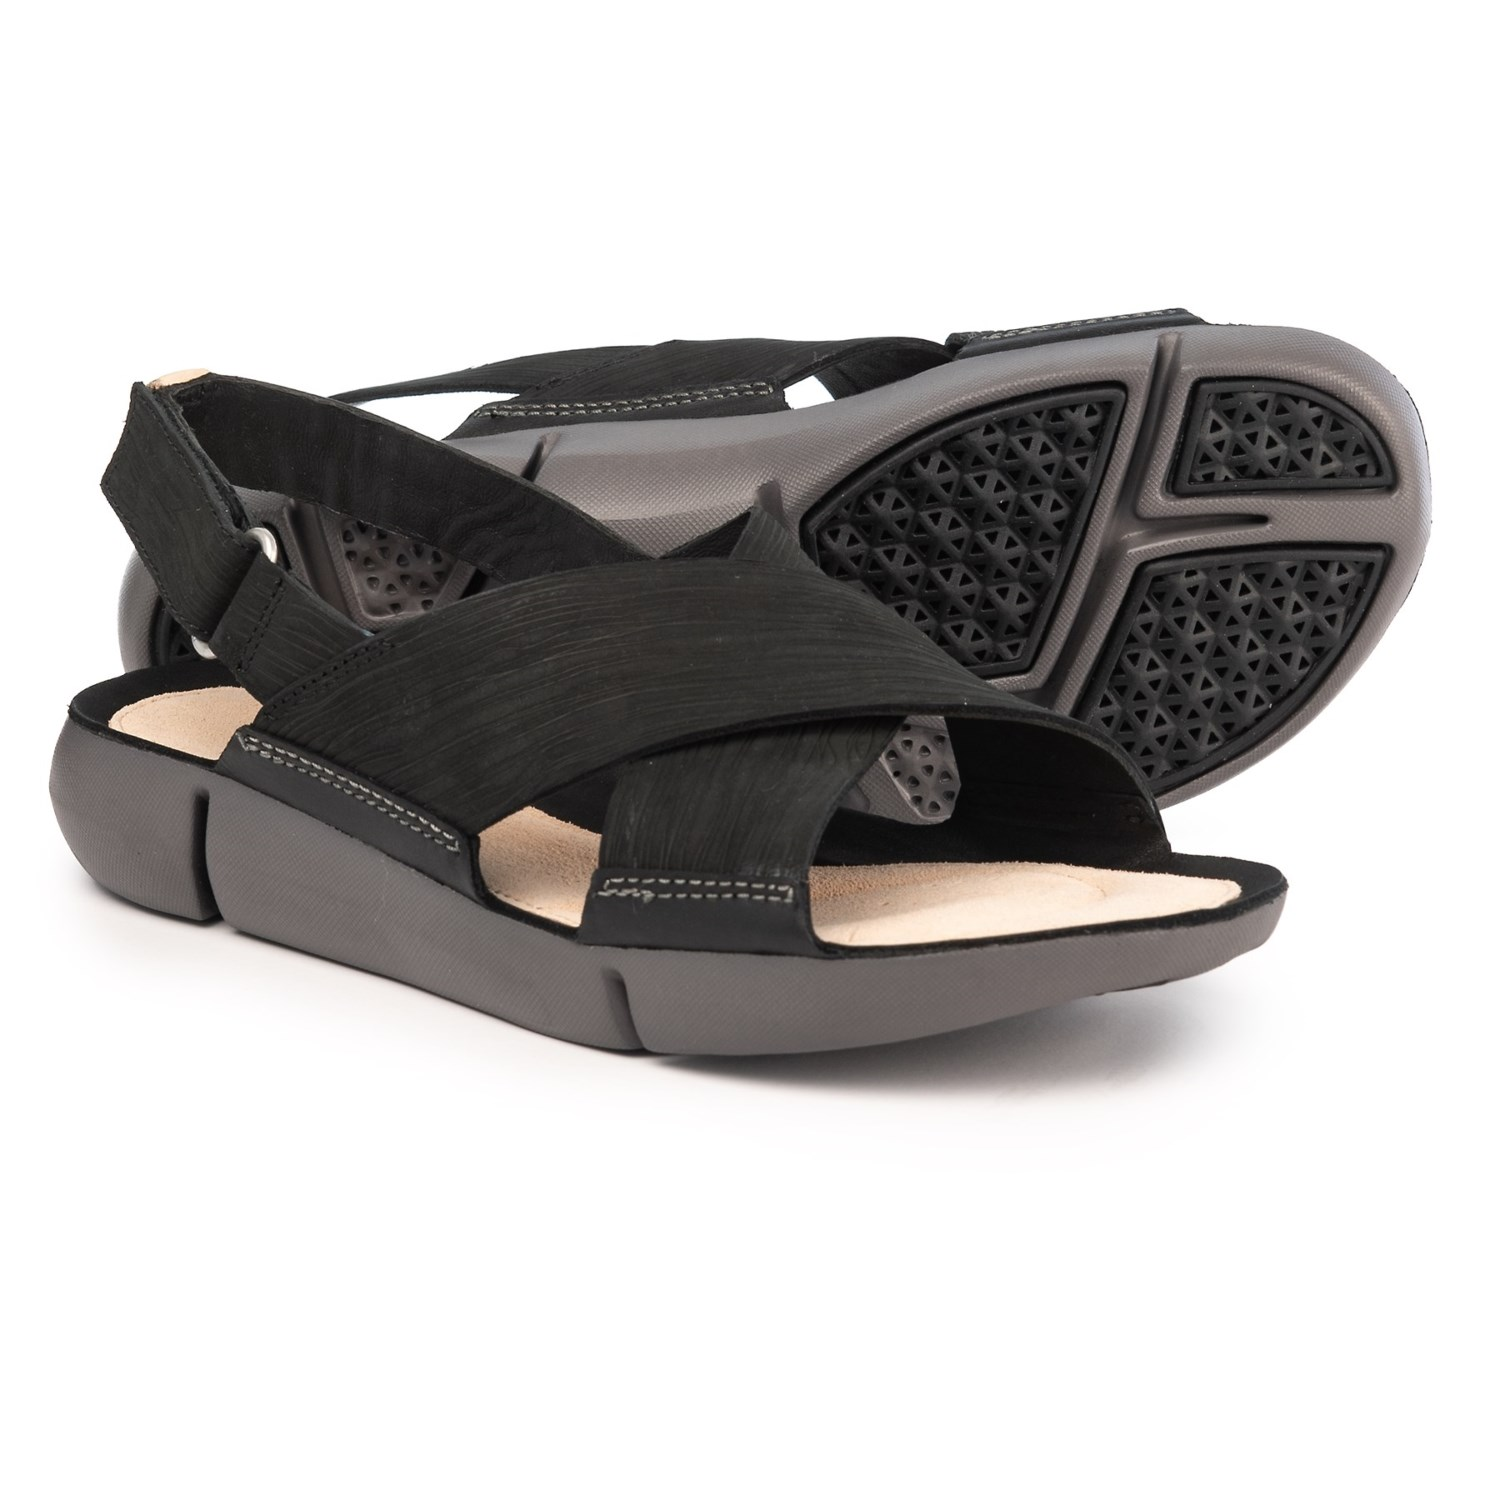 ac0ba7b61ff1 Clarks Tri Chloe Sandals - Leather (For Women) in Black